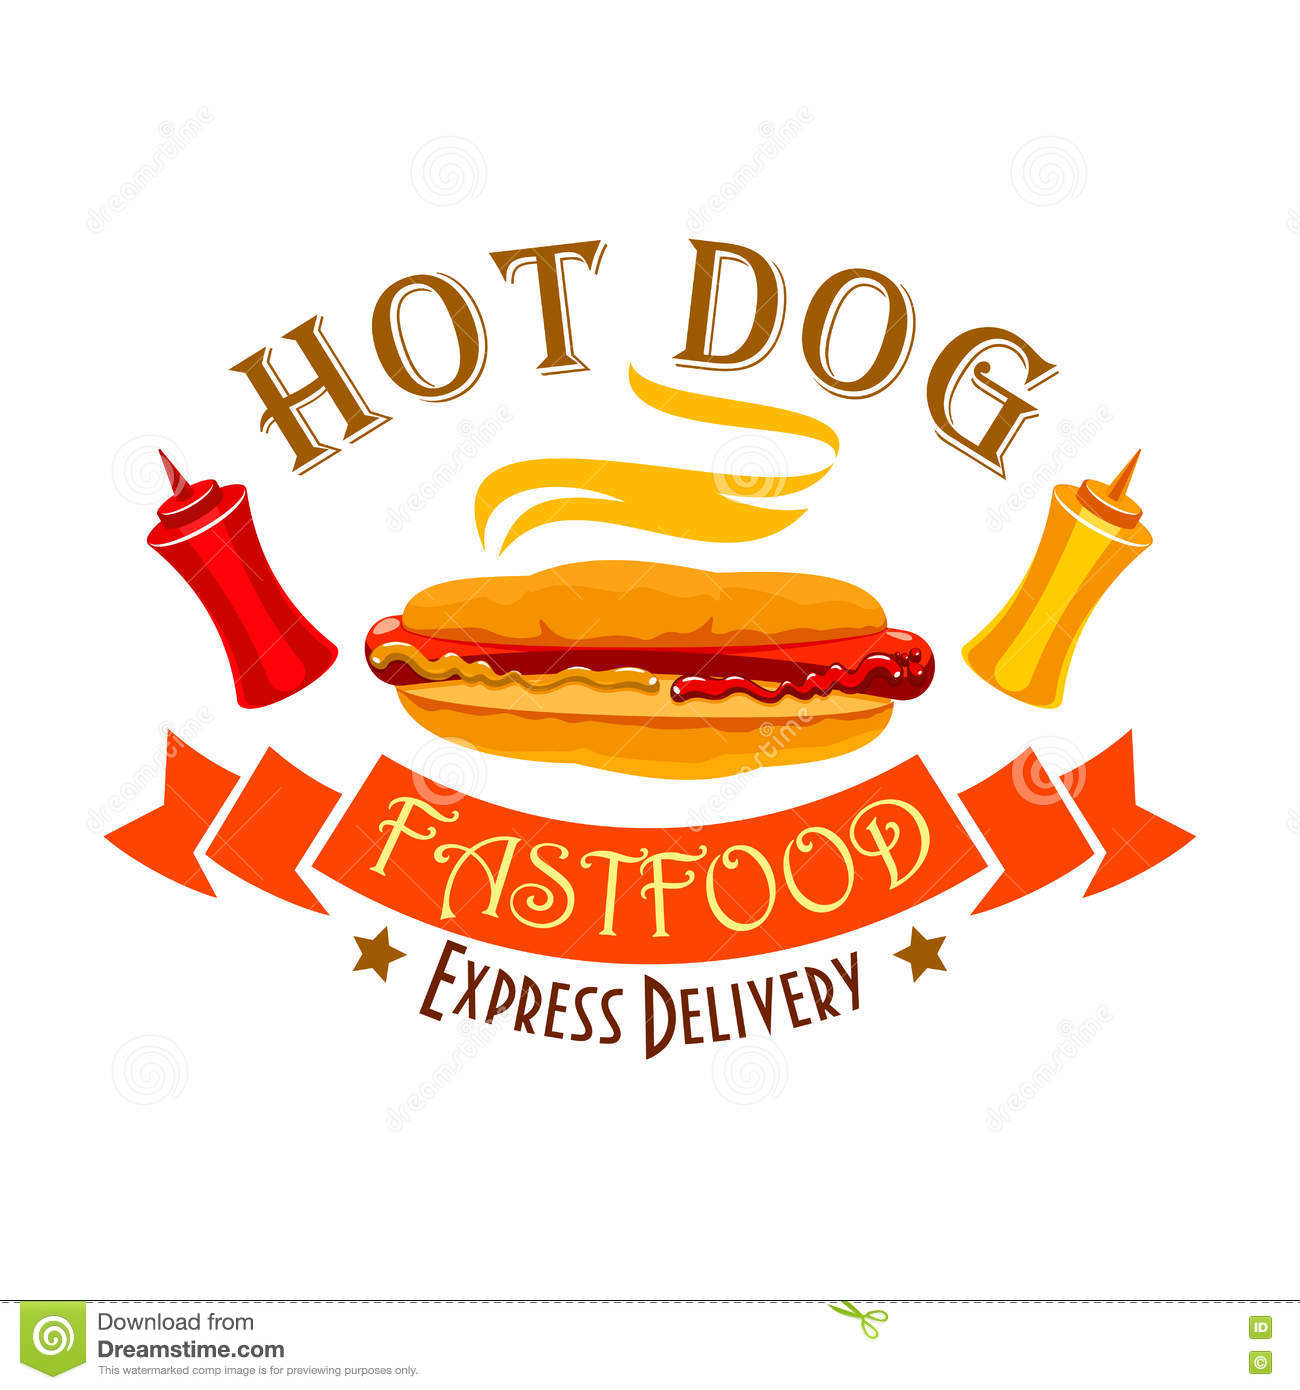 Hot Food Express Delivery